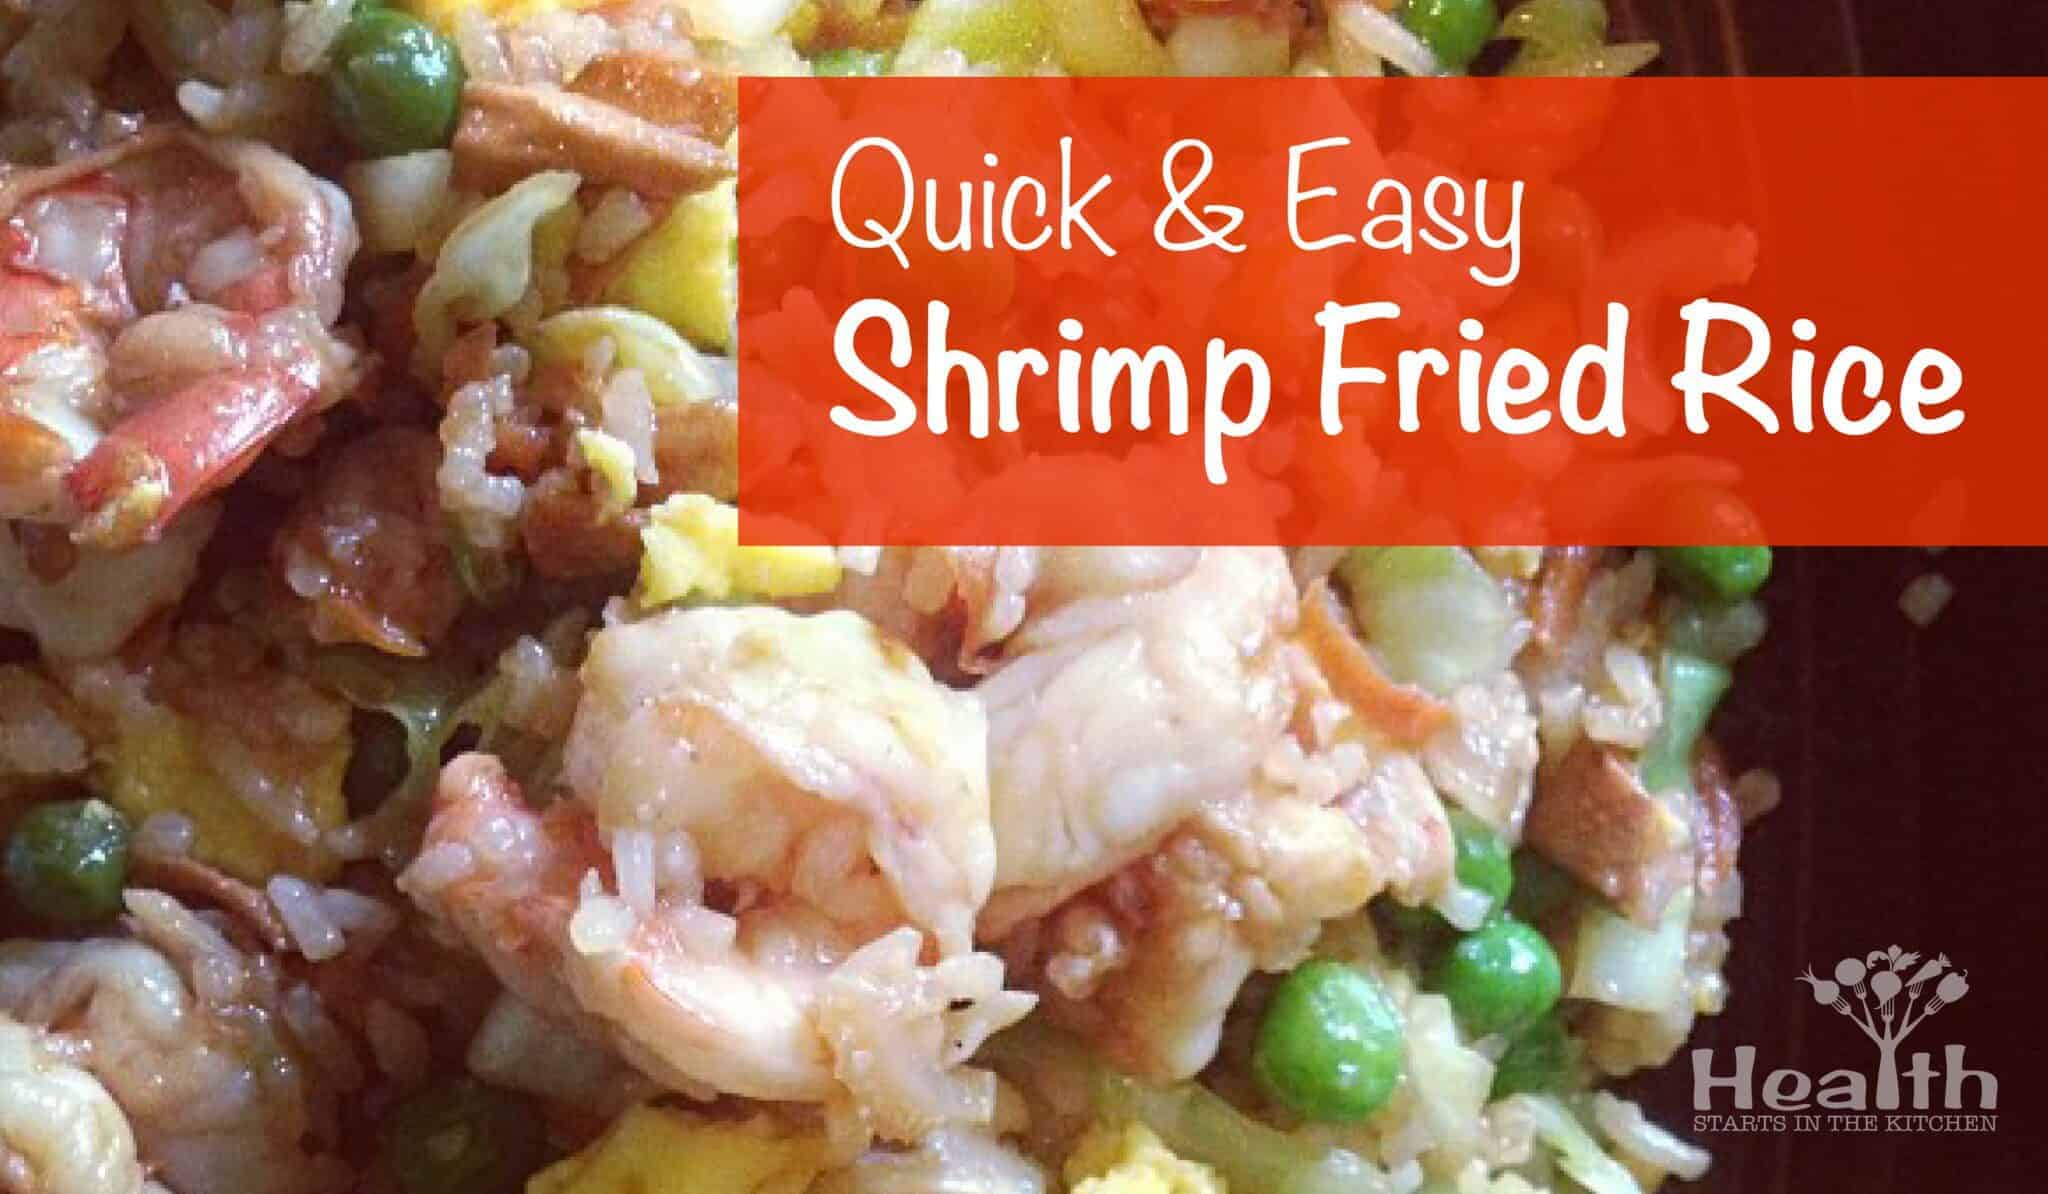 Quick & Easy Shrimp Fried Rice